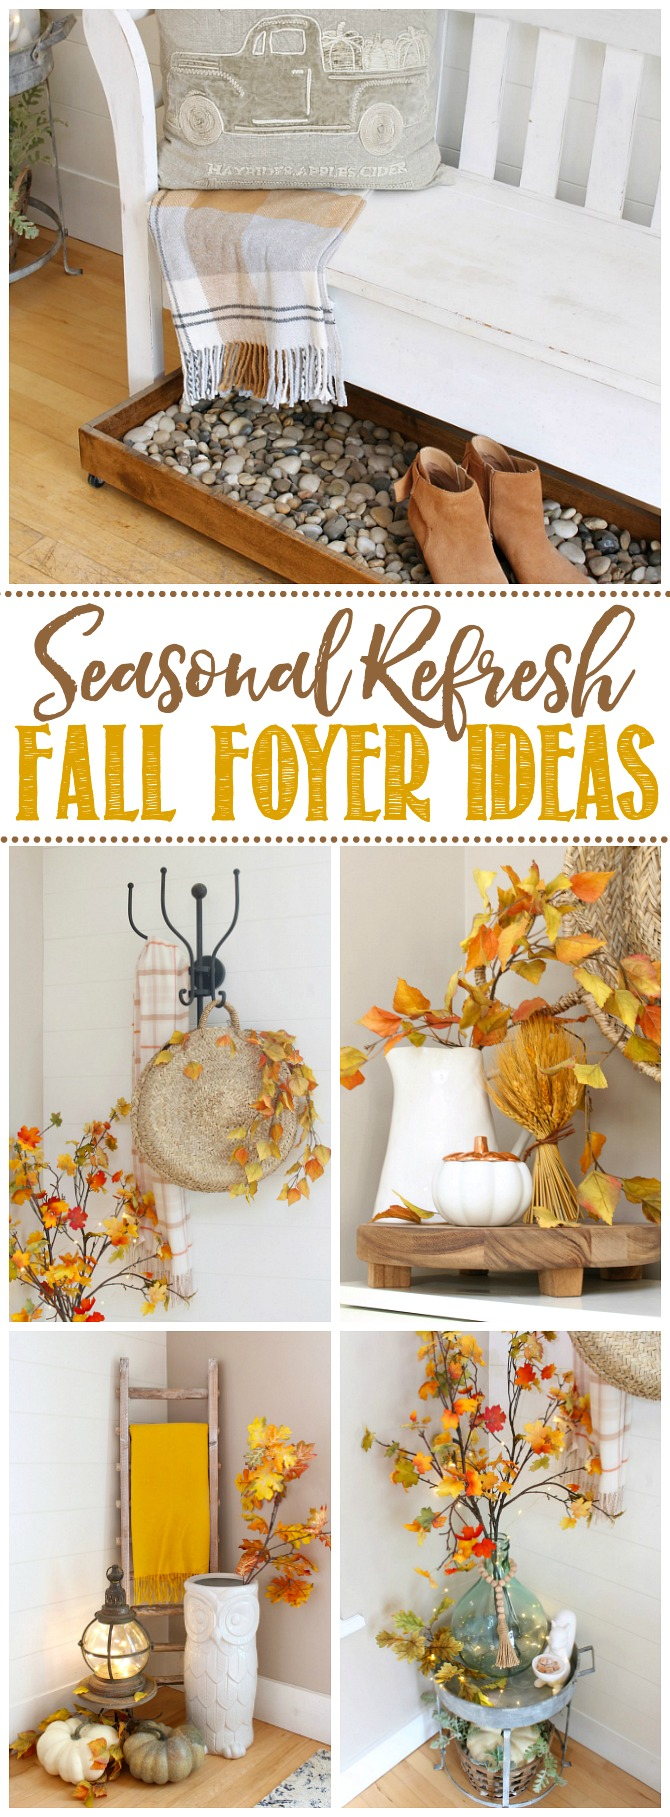 Collage of fall foyer ideas to add a seasonal touch.